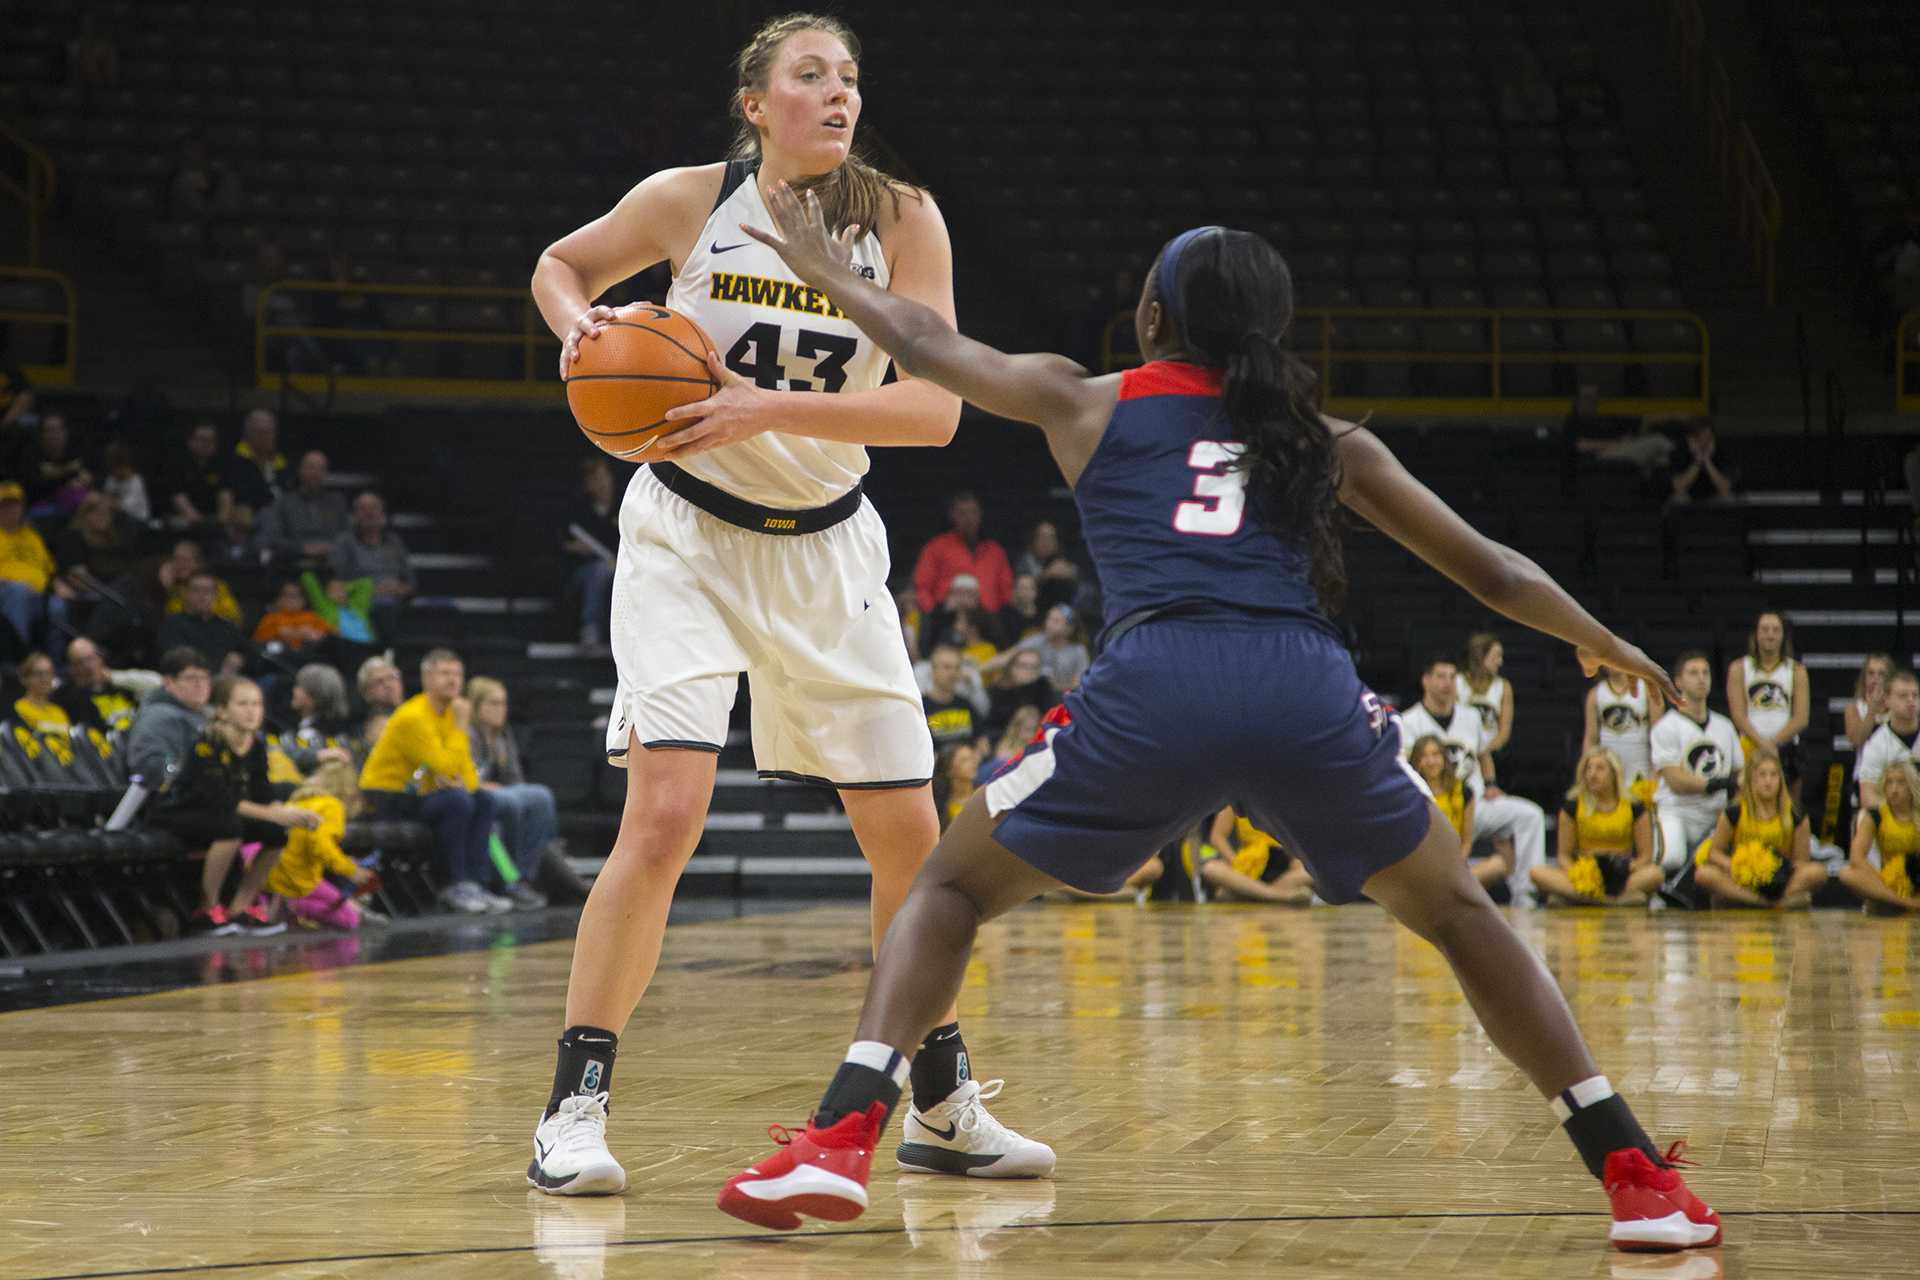 Iowa forward Amanda Ollinger guards the ball from Samford guard Shauntai Battle during the Iowa/Samford basketball game at Carver-Hawkeye Arena on Sunday, Dec. 3, 2017. The Hawkeyes defeated the Bulldogs, 80-59. (Lily Smith/The Daily Iowan)